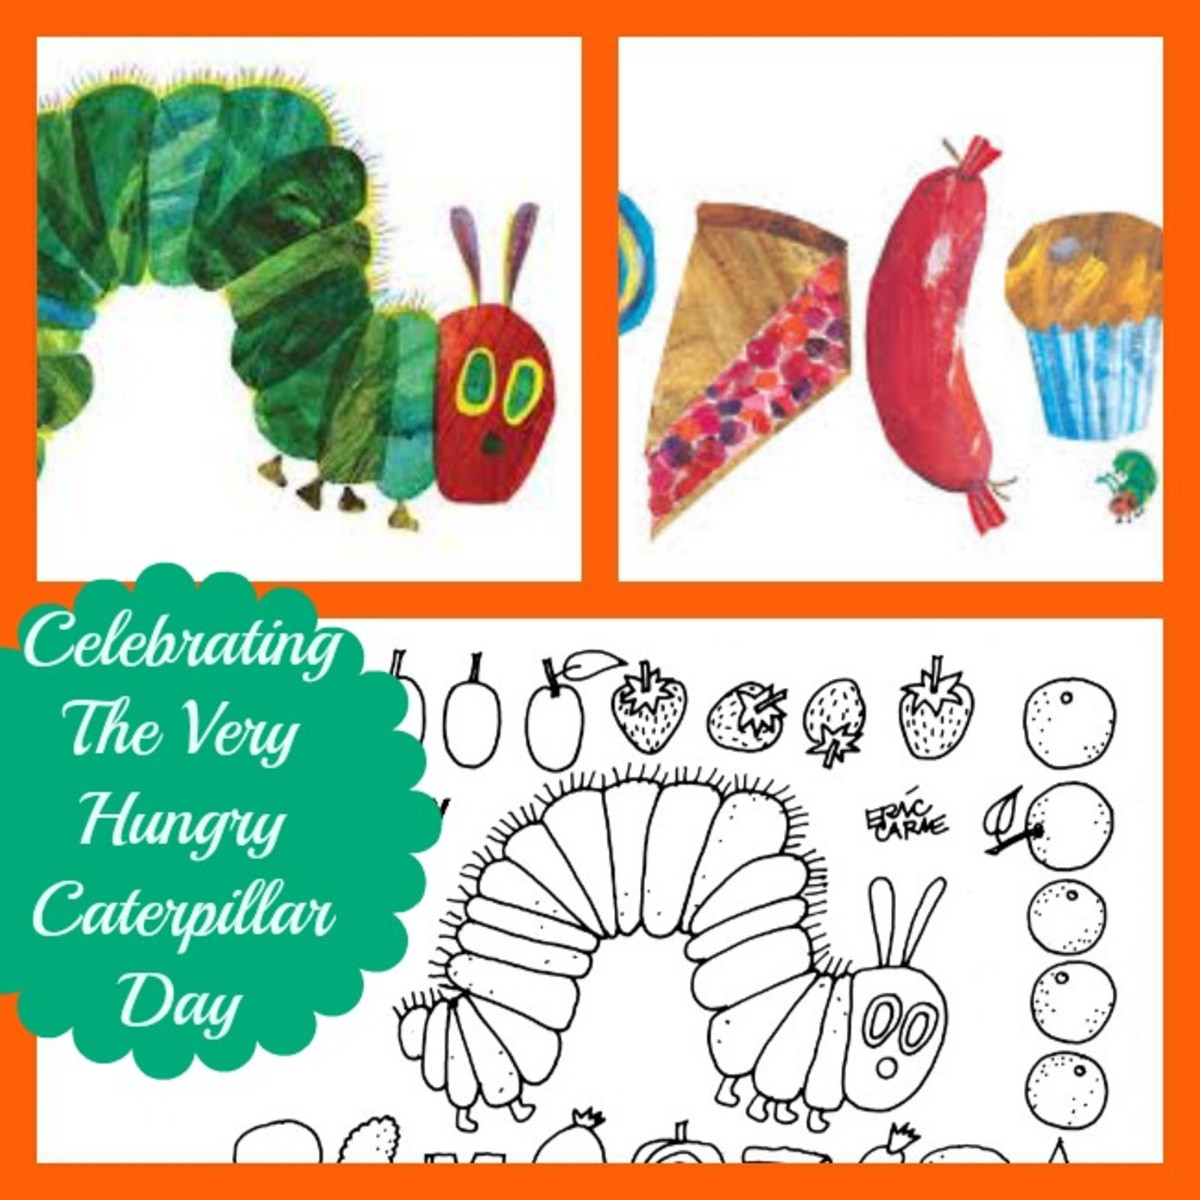 hight resolution of we are big fans of the very hungry caterpillar in my house i read this book hundreds of times with my older daughter and now i am passing down the